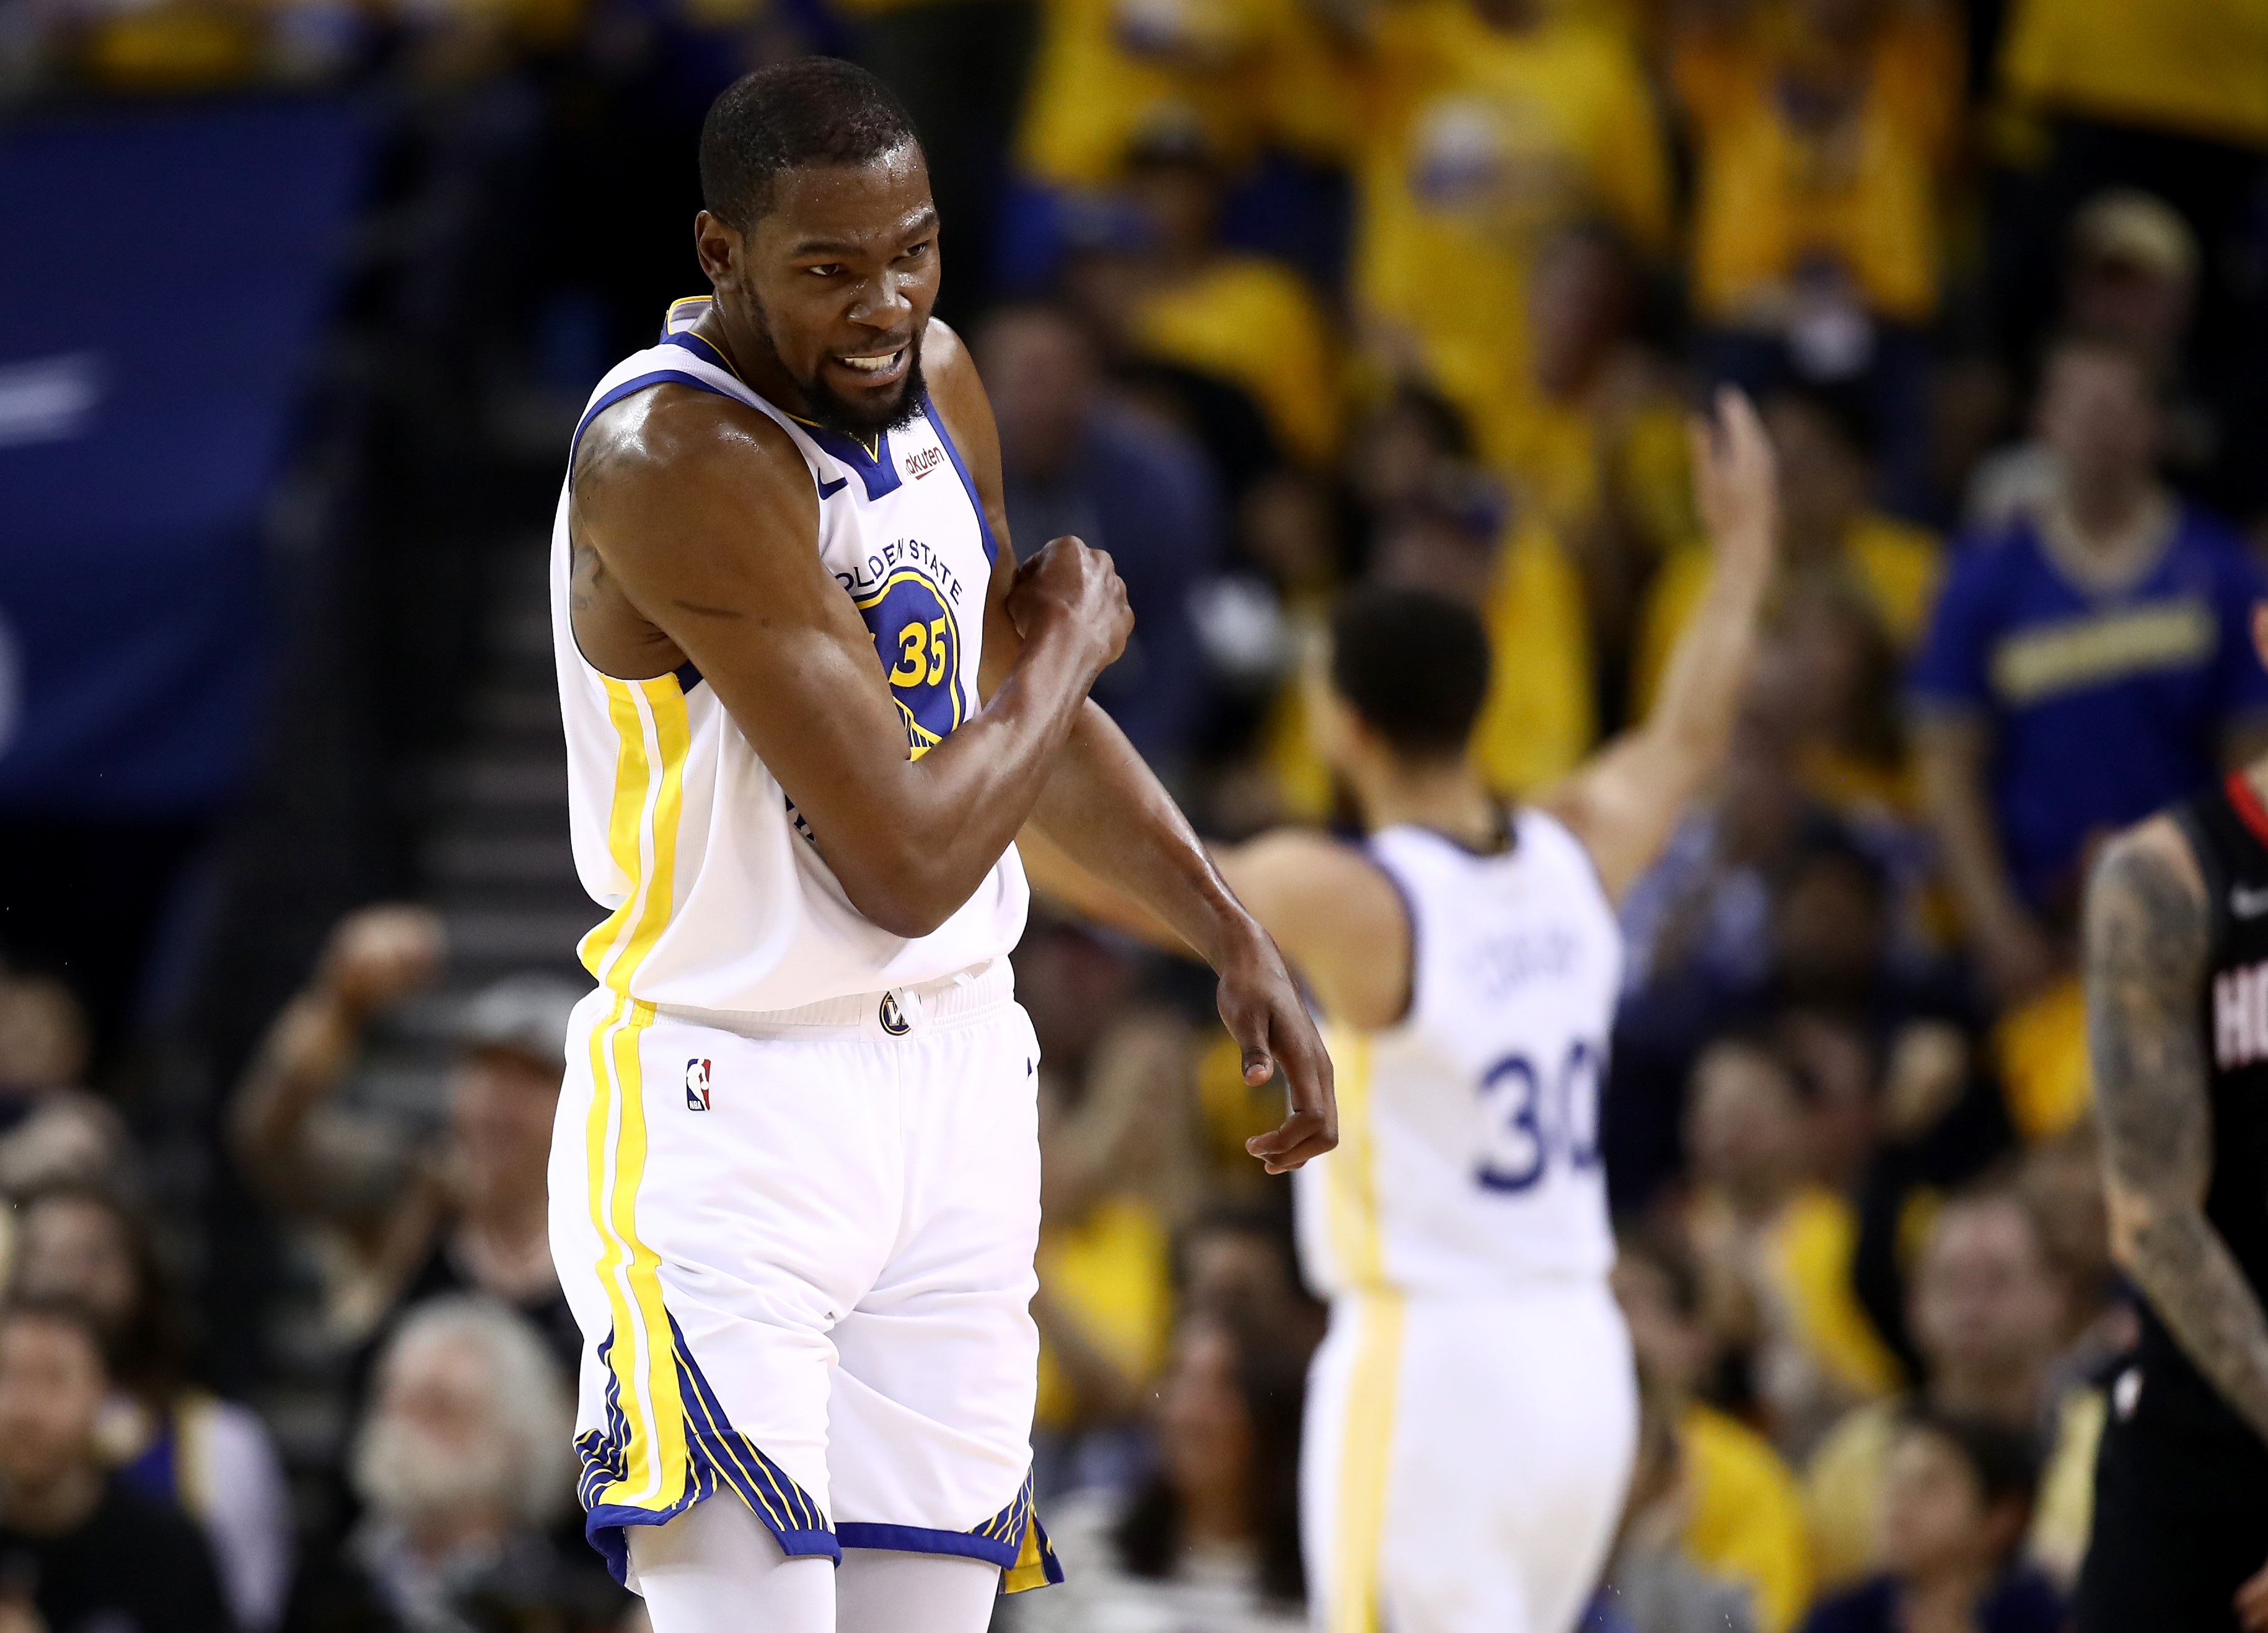 Kevin Durant (Golden State Warriors)